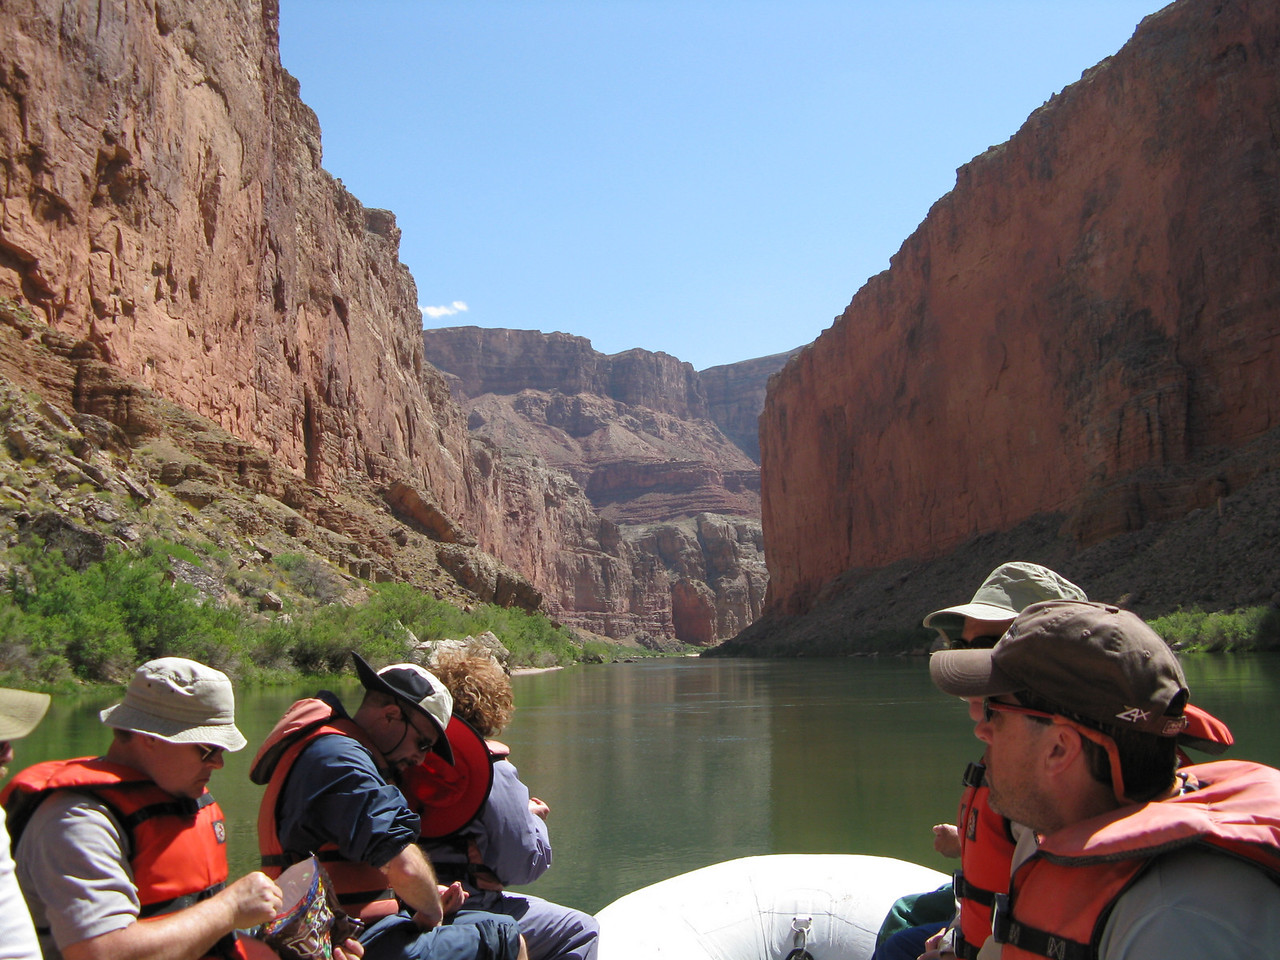 About mile 42:  After our hike at Royal Arches, we continue floating through Marble Canyon on flat green water.